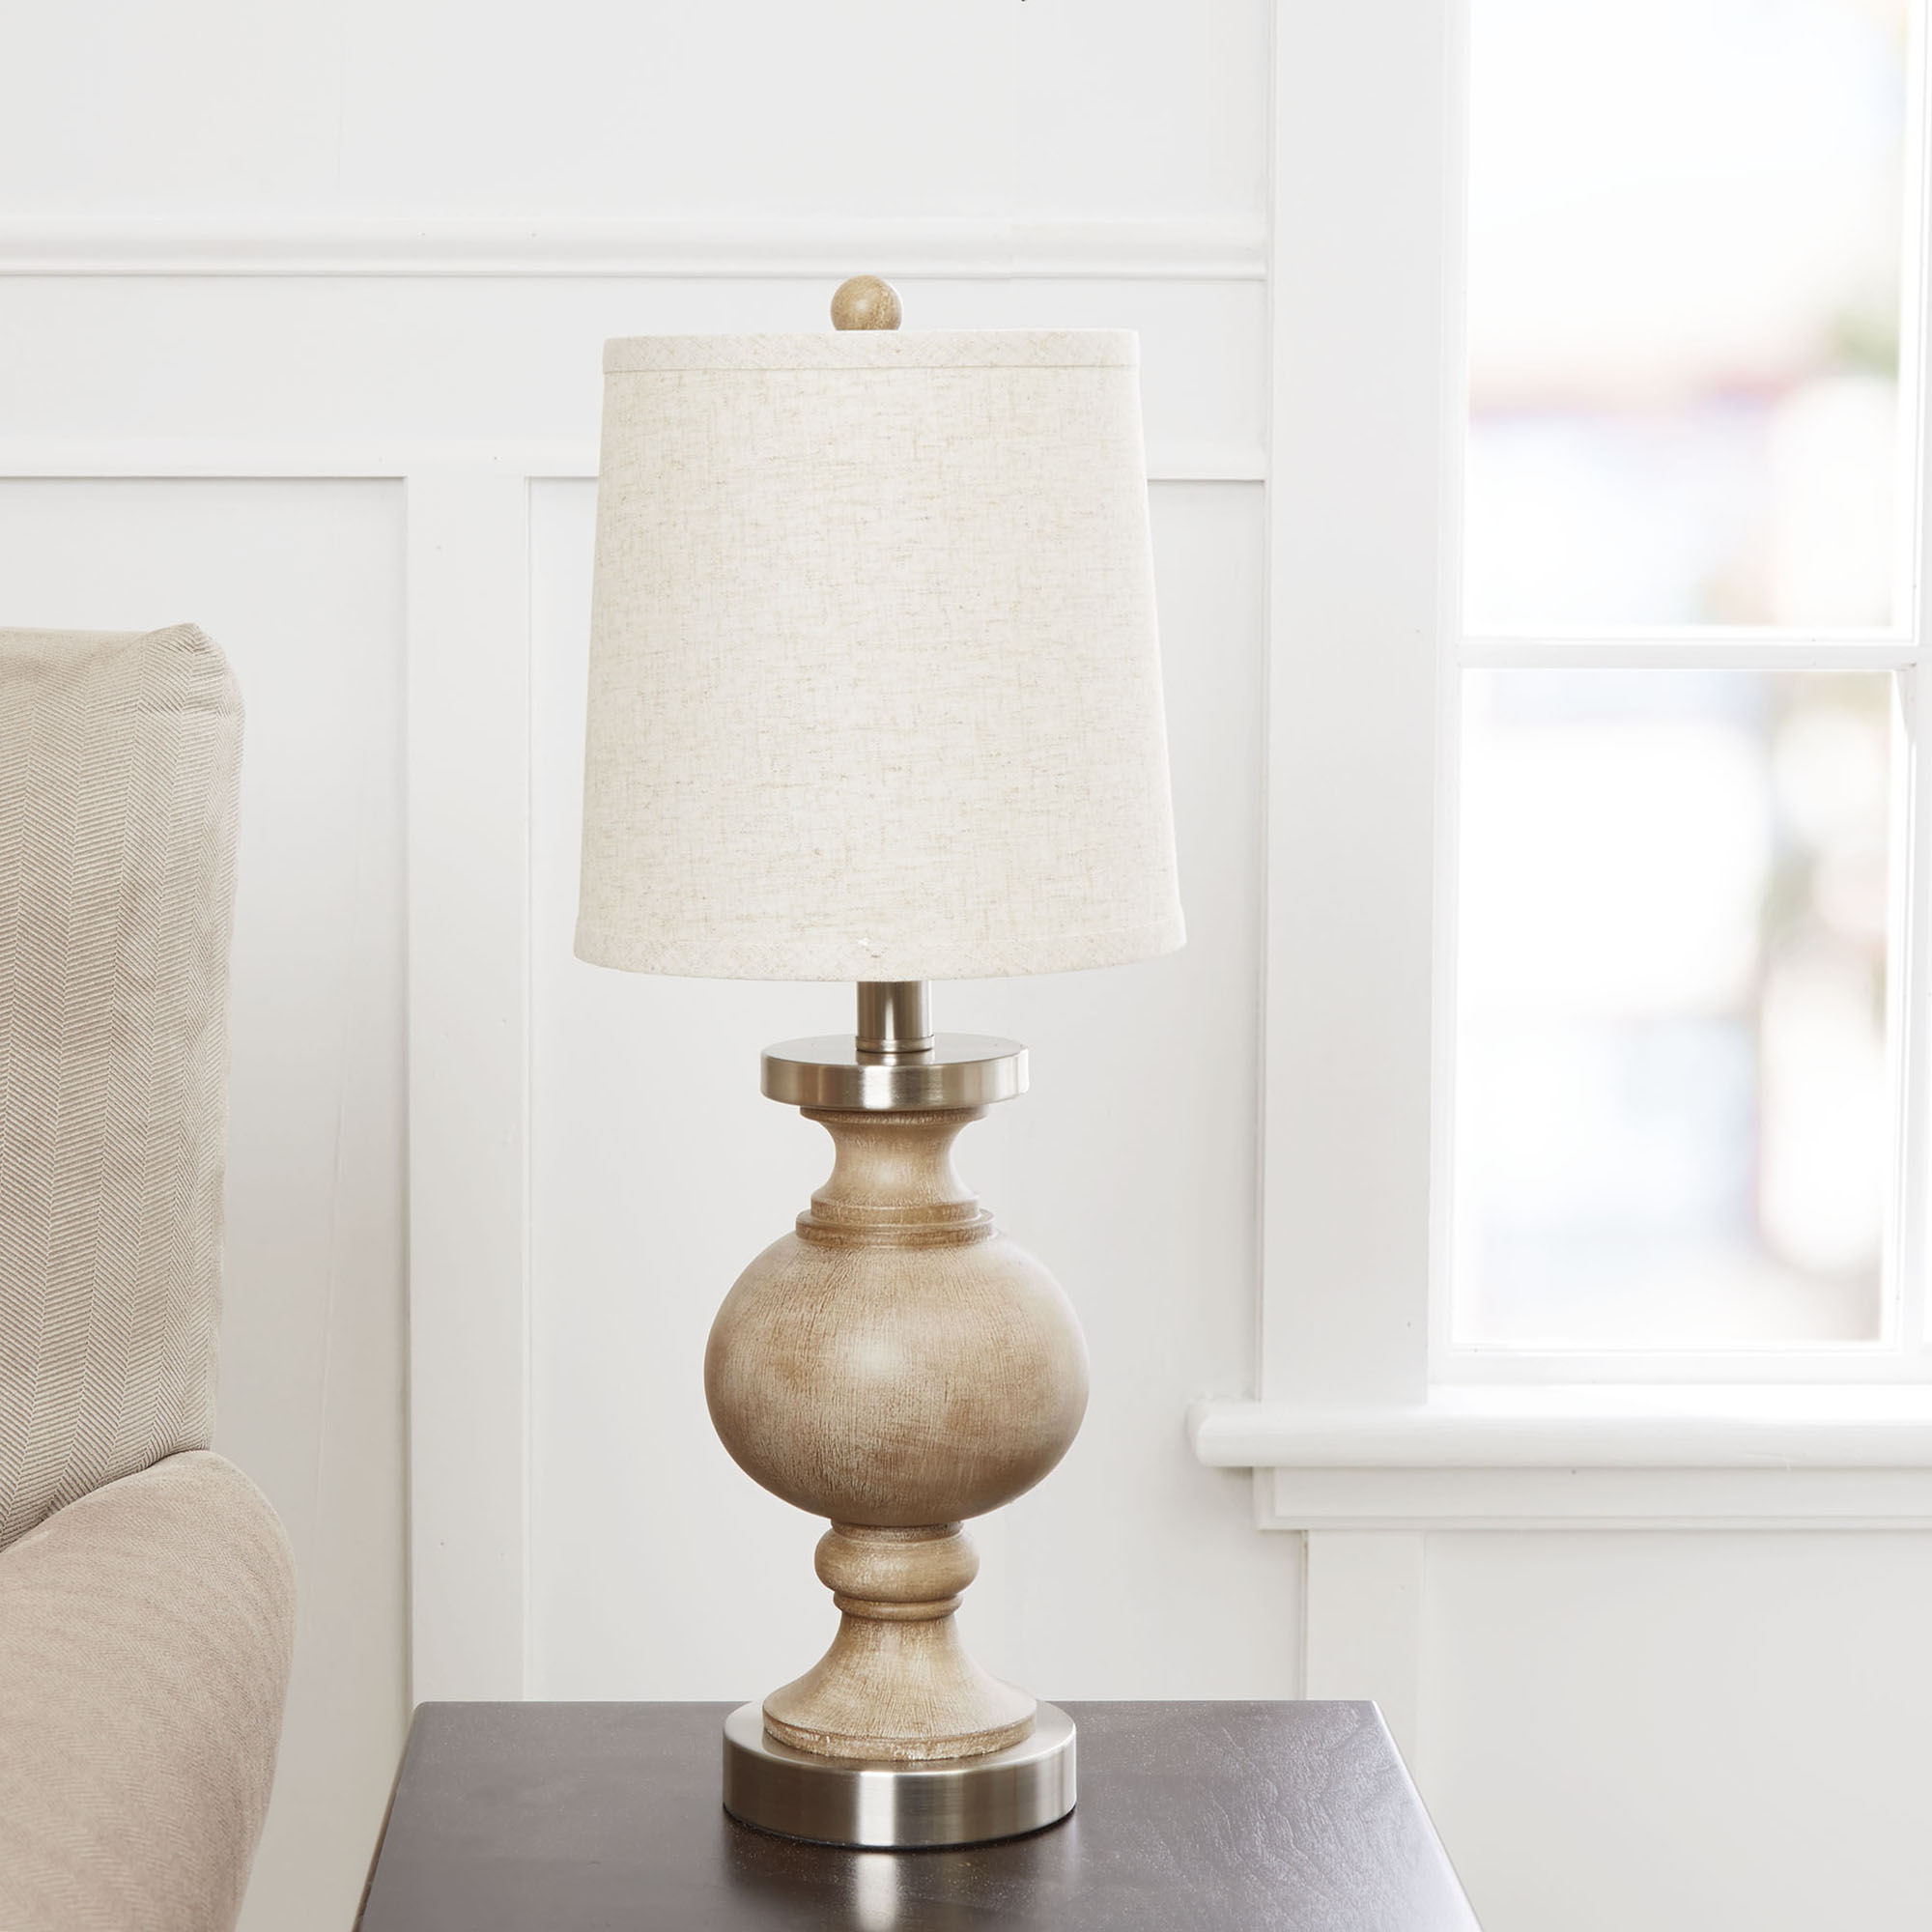 Click here to buy Better Homes and Gardens Weathered Finish Table Lamp by Cheyenne Products.